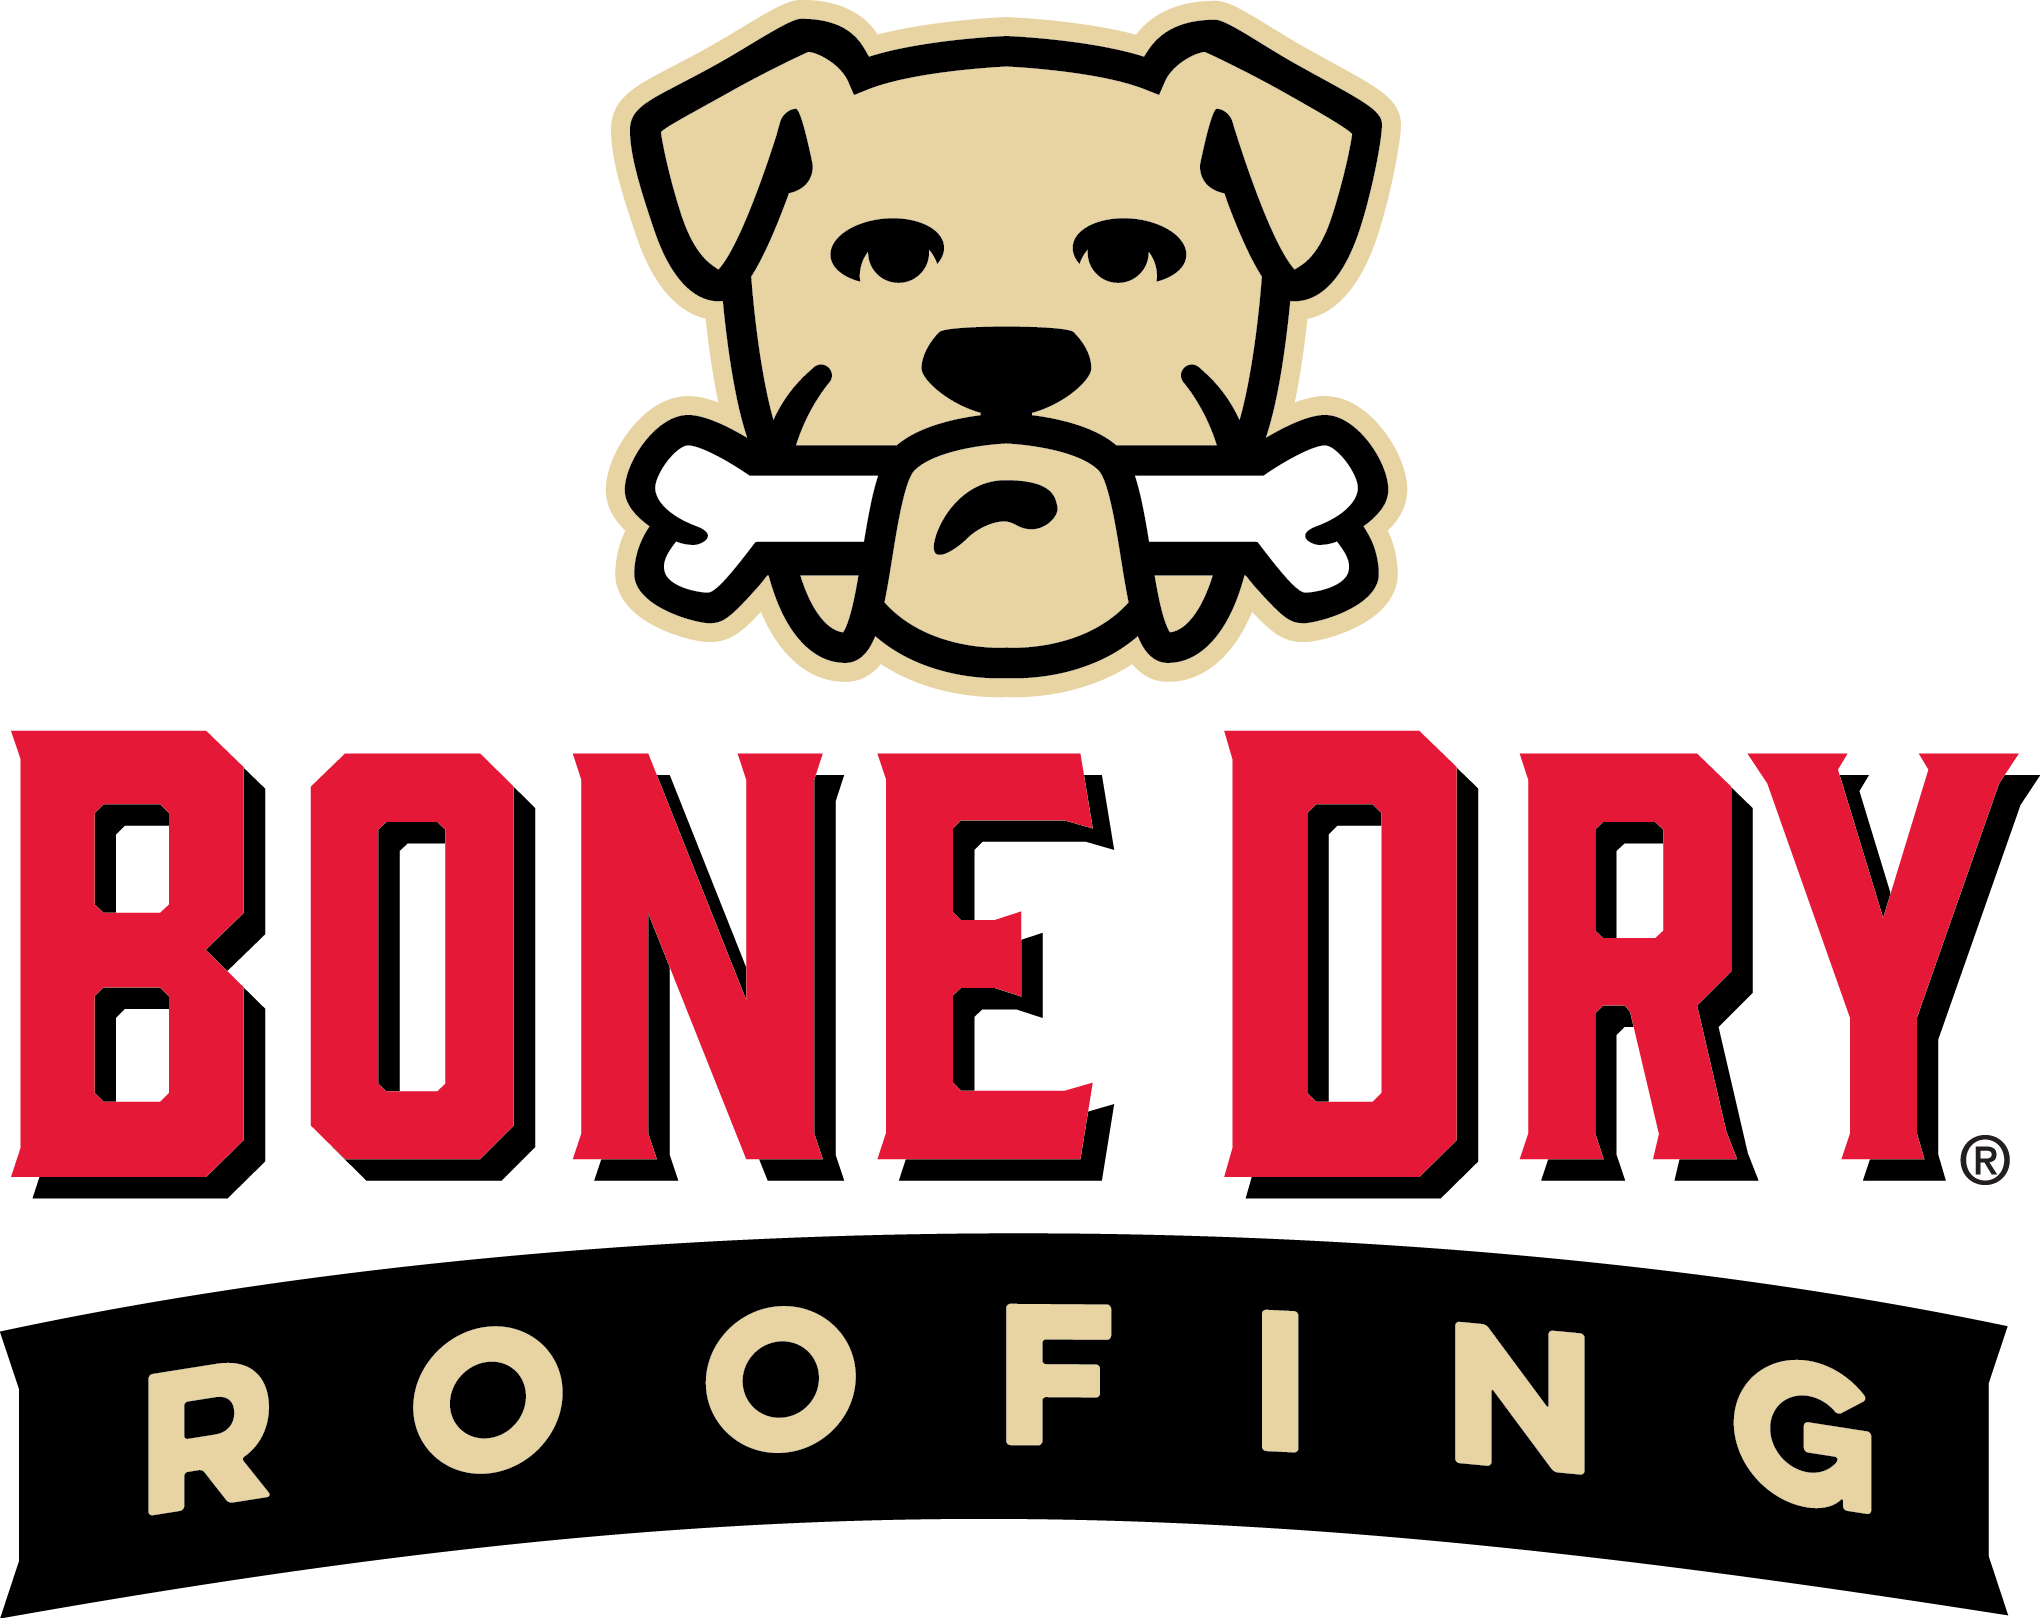 Bone Dry Roofing is a Top-Rated Roofing Company in Fort Wayne, IN